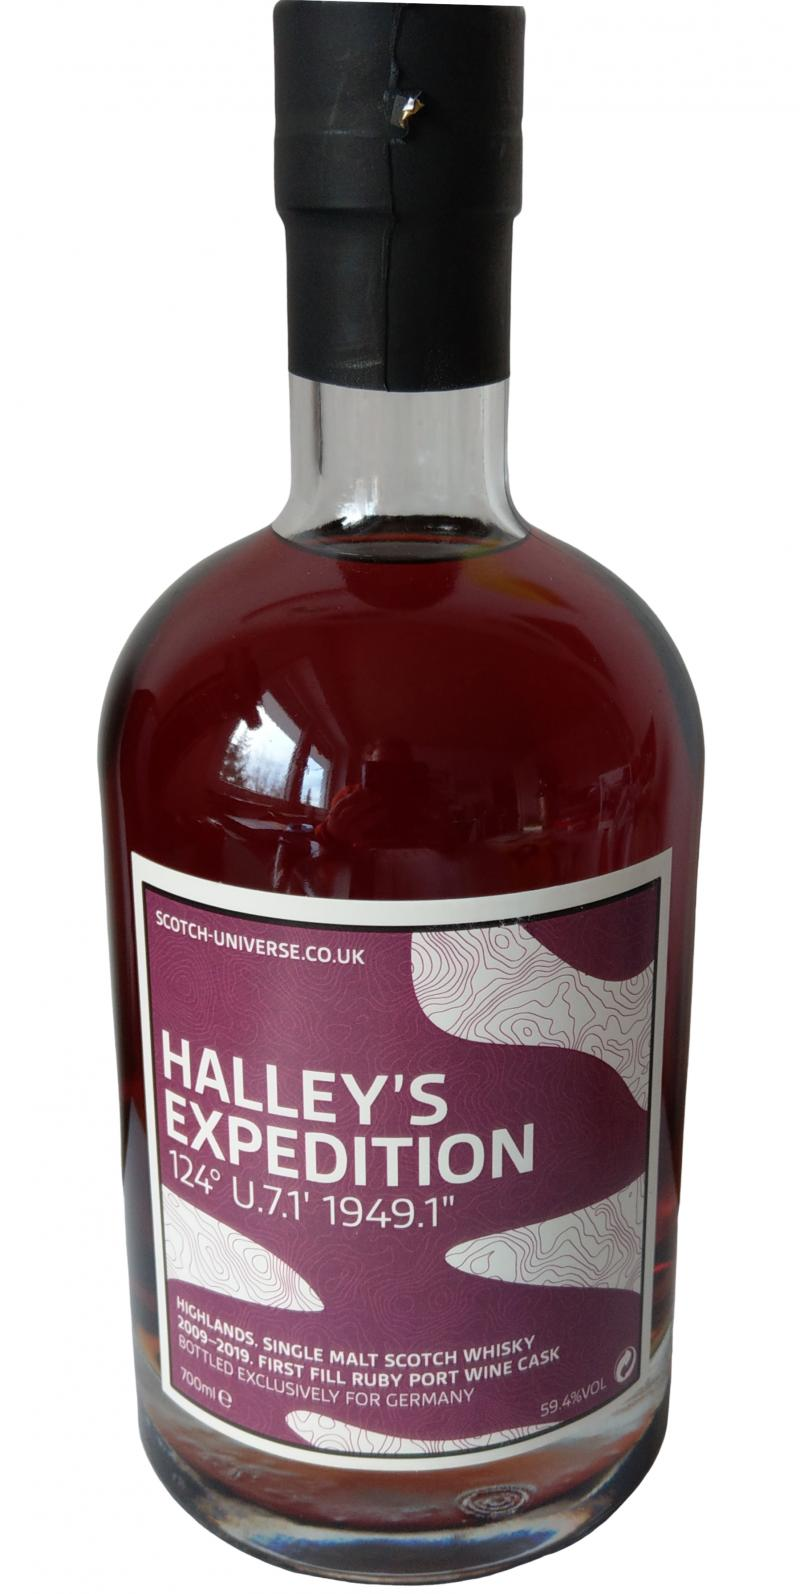 Scotch Universe Halley's Expedition 124° U.7.1' 1949.1""